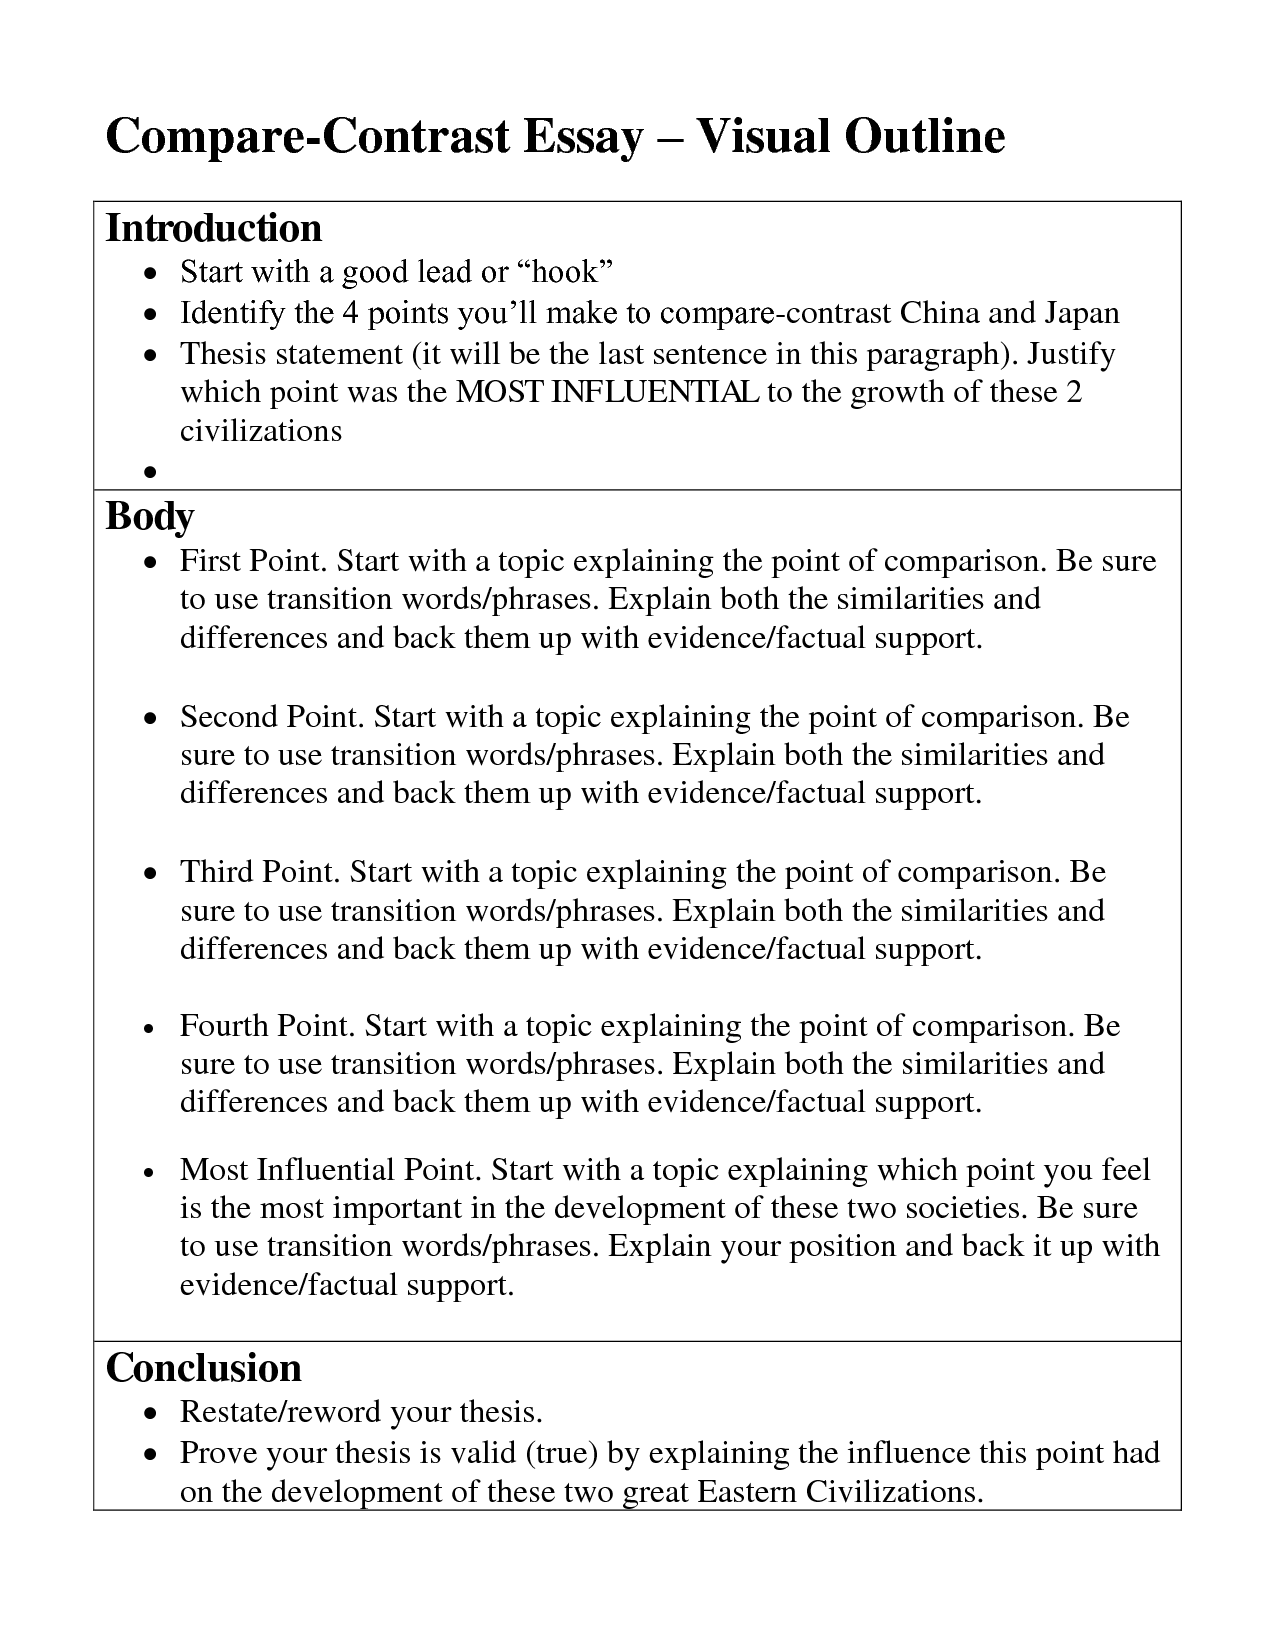 010 Compare Contrast Essays Essay Best Topics Technology Comparison Outline And Format Full